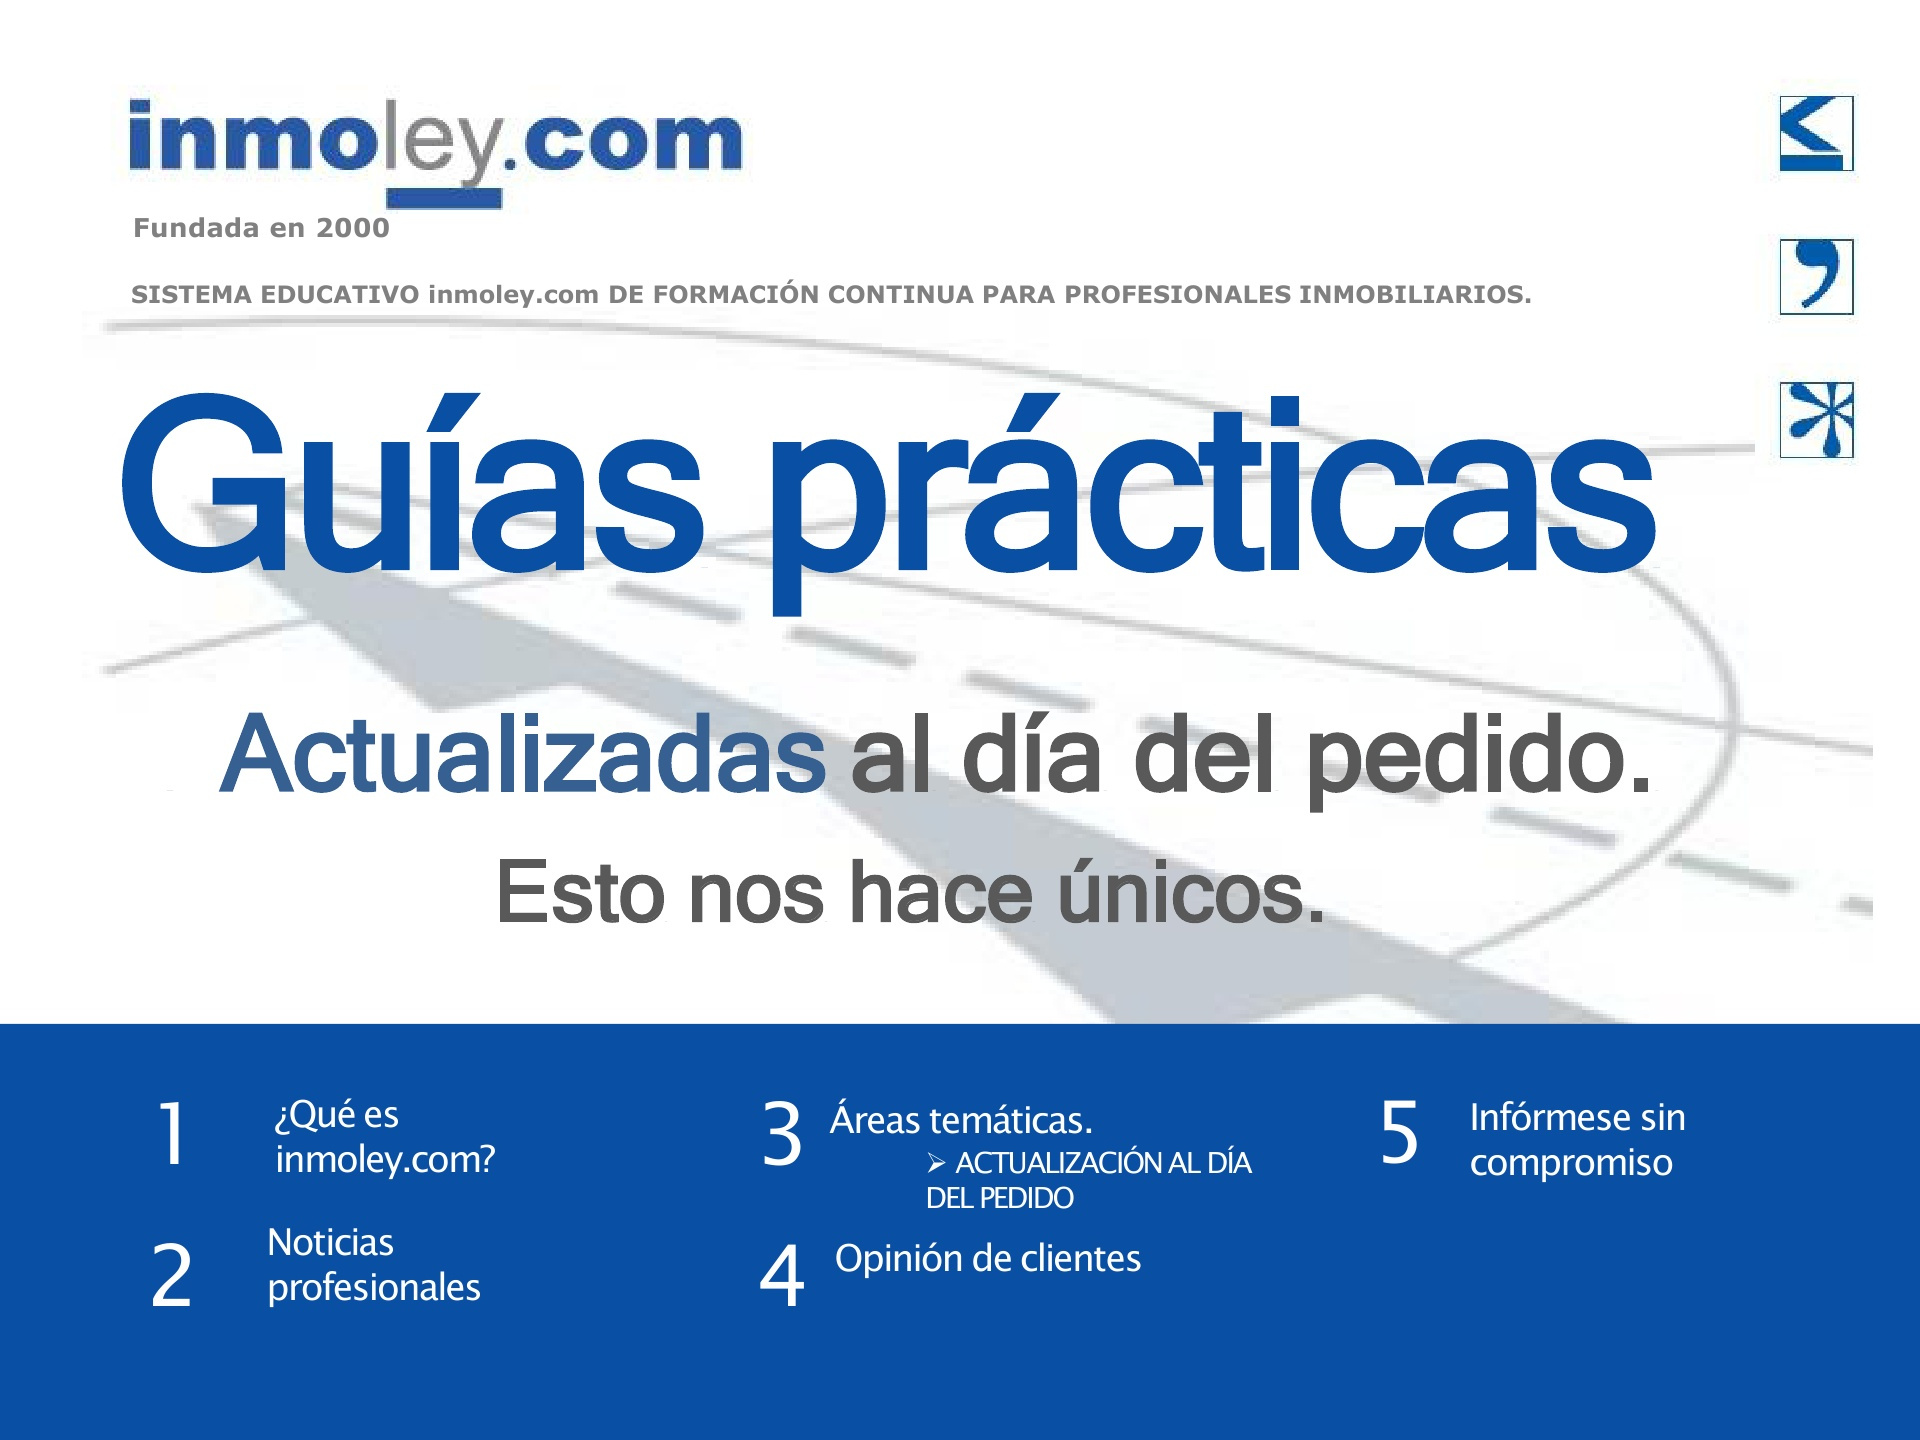 Ver folleto en PDF de inmoley.com